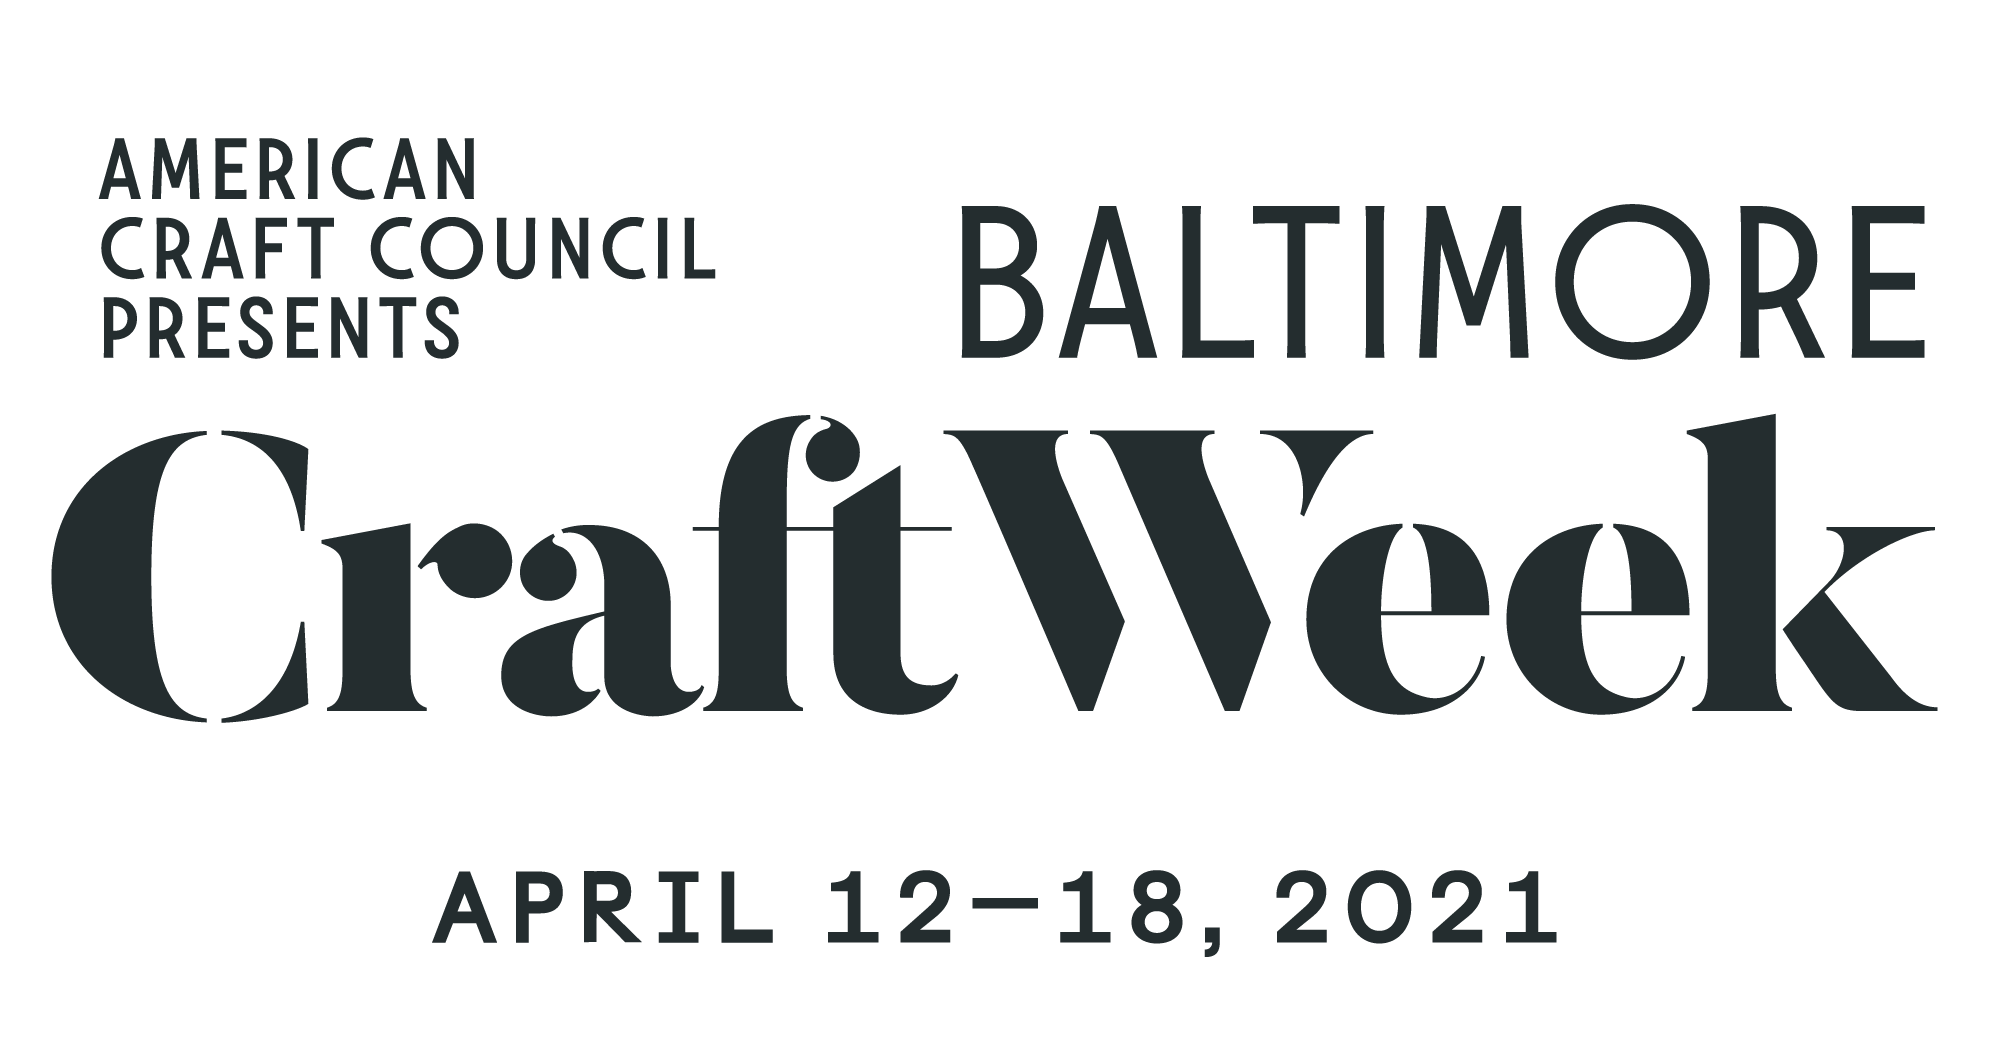 Baltimore Craft Week 2021